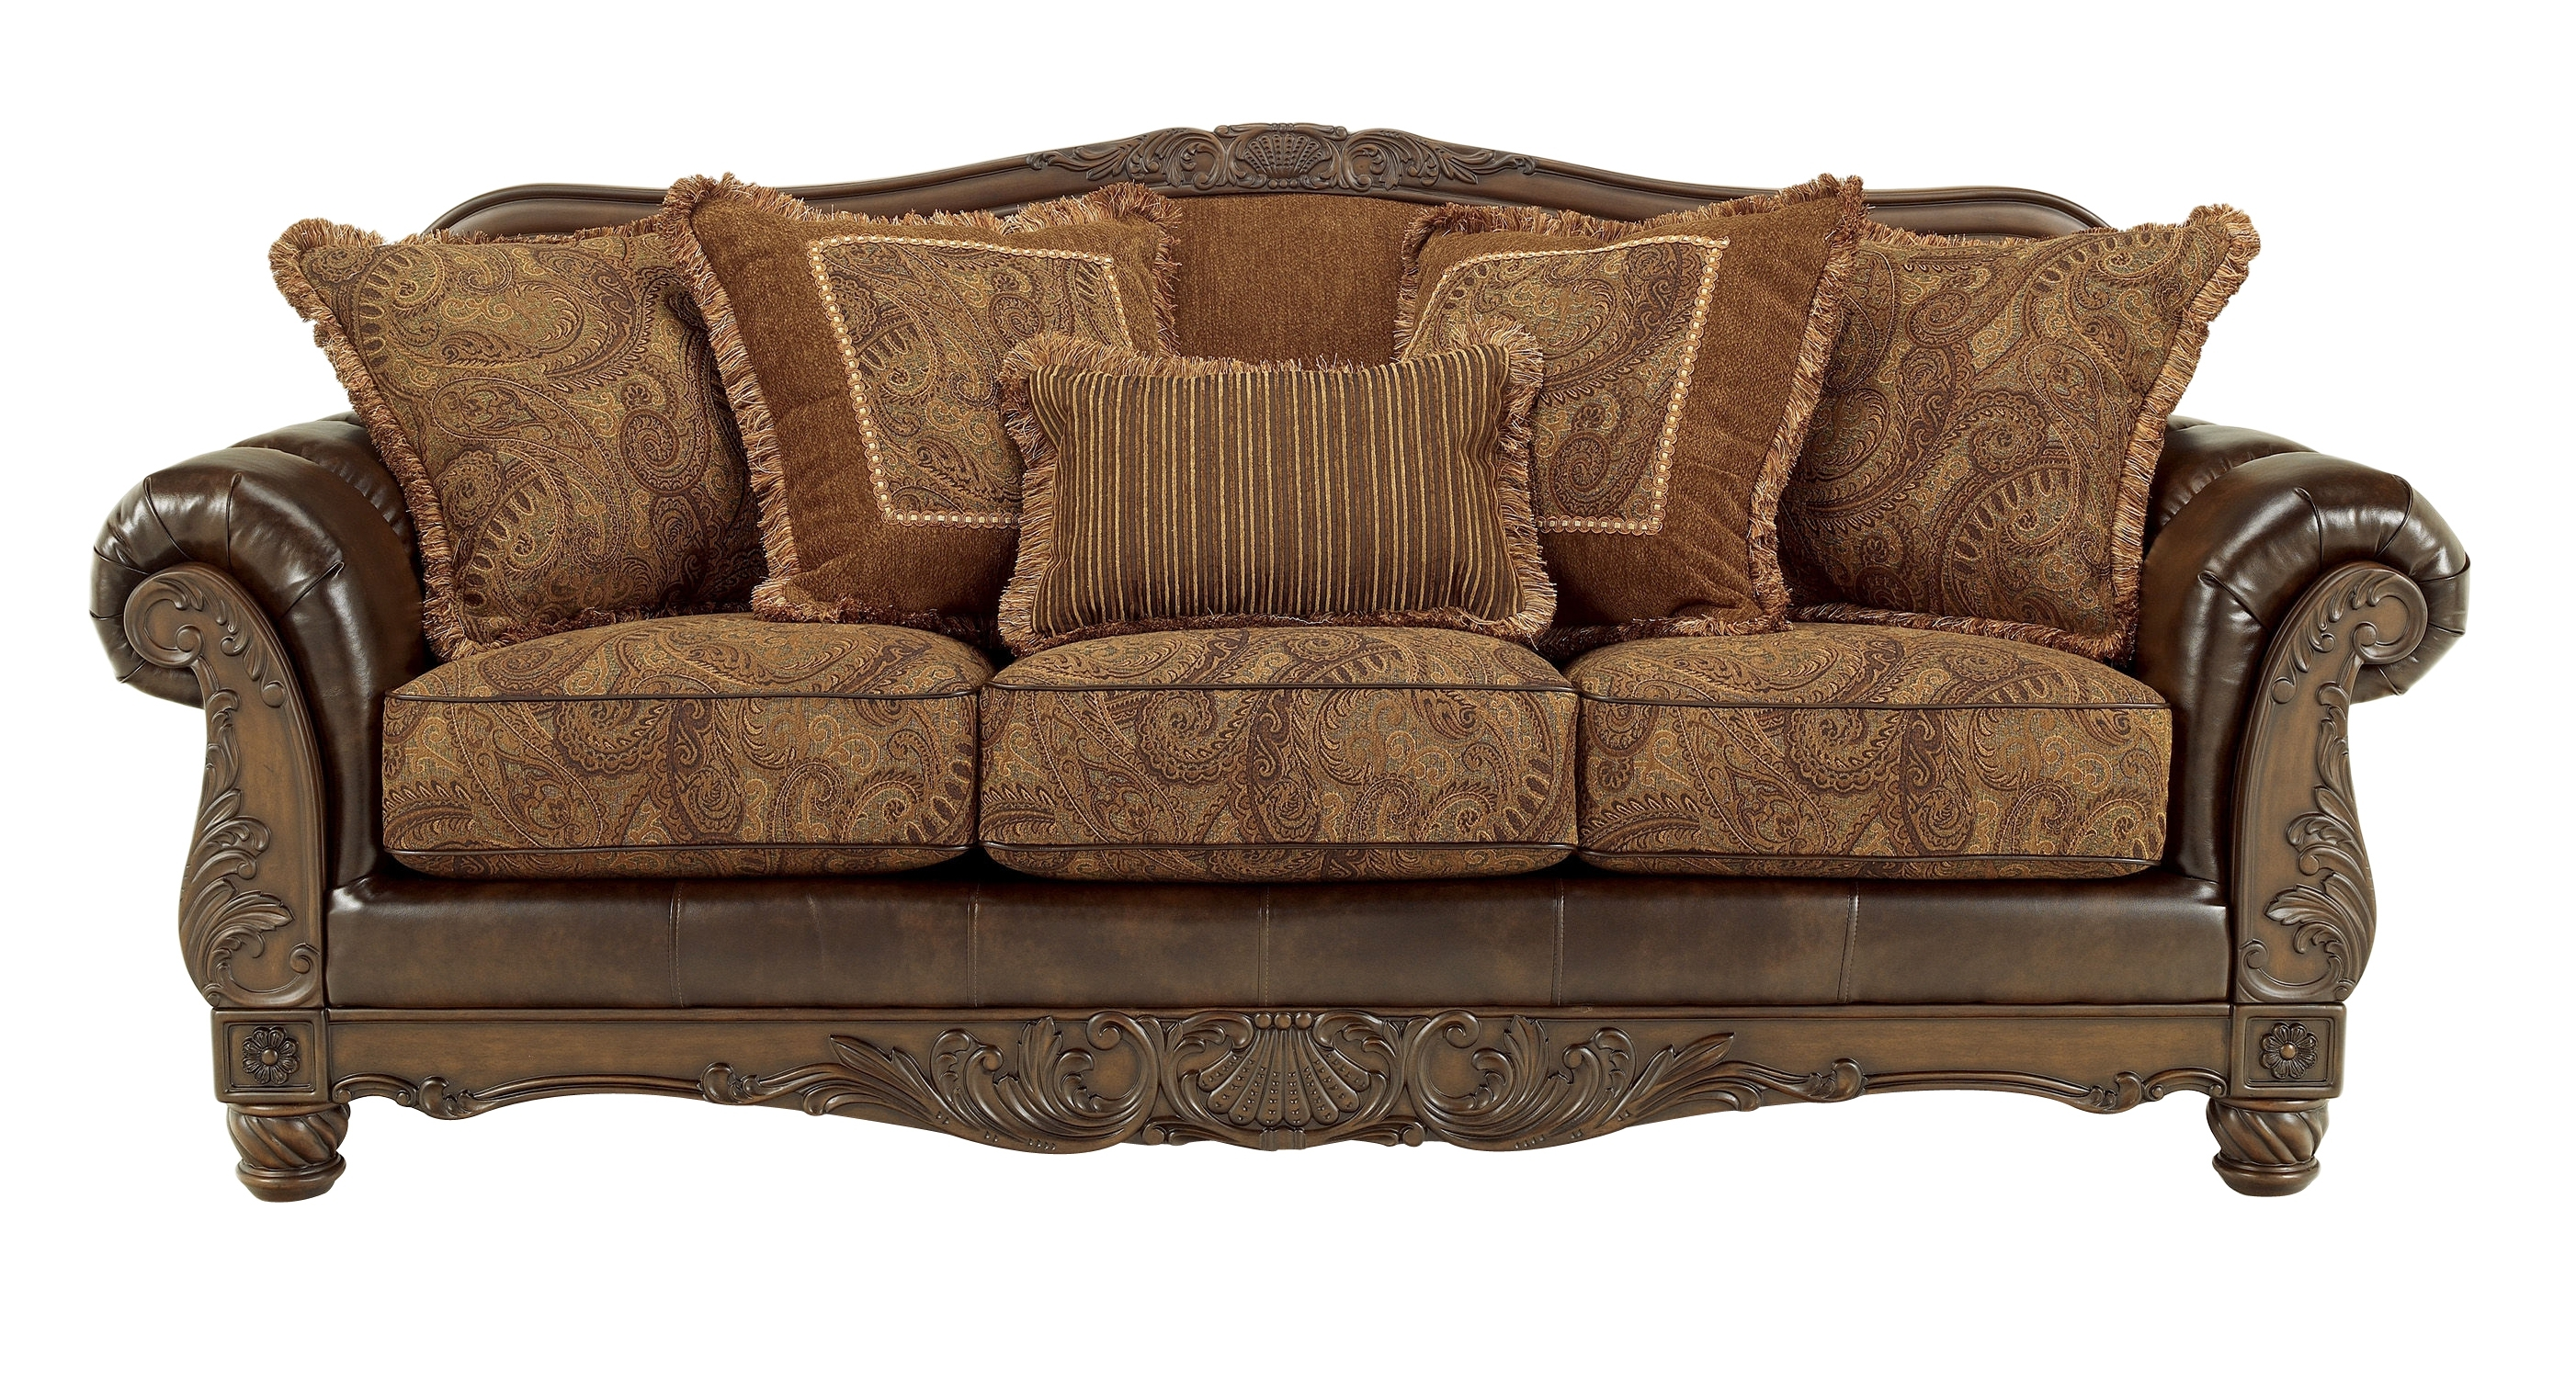 Fresco Durablend Traditional Antique Fabric Sofa Living Rooms With Regard To Antique Sofa Chairs (Image 12 of 15)